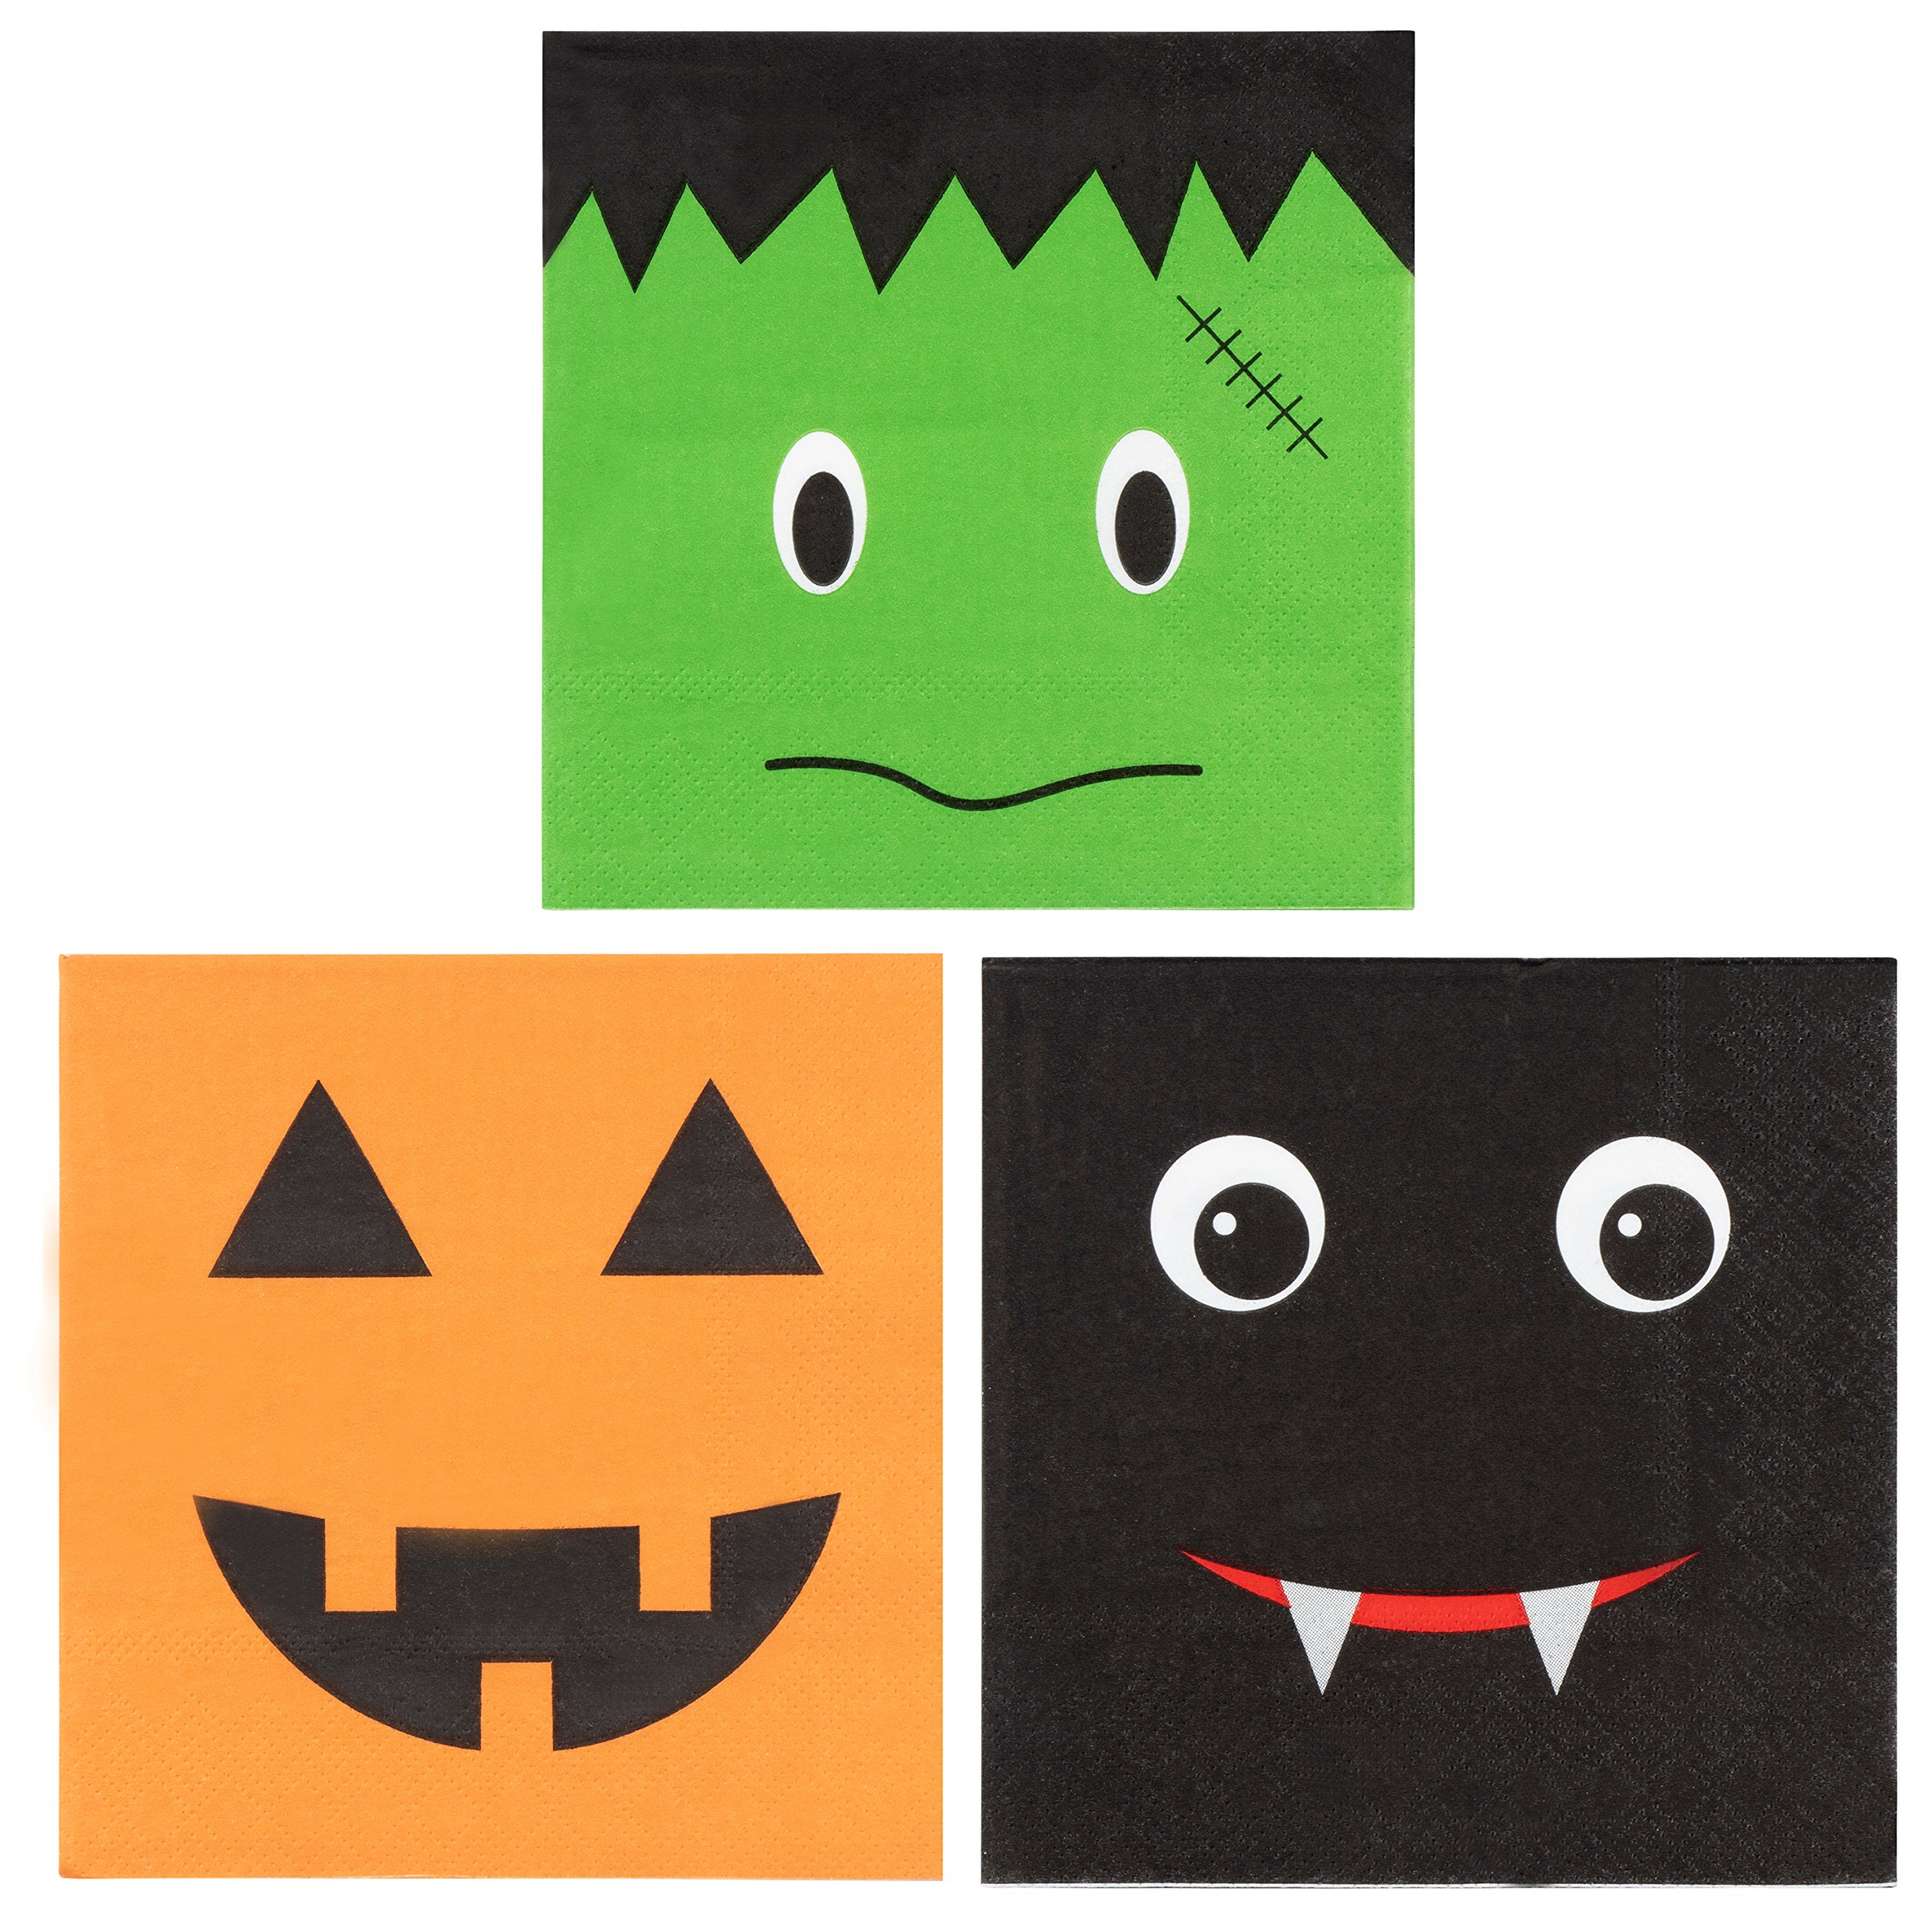 150-Pack Halloween Luncheon Paper Napkins in 3 Assorted Fun Designs, 3-Ply, 50 of Each - Green, Orange, Black, 10 x 10 Inches Unfolded, 5 x 5 Inches Folded